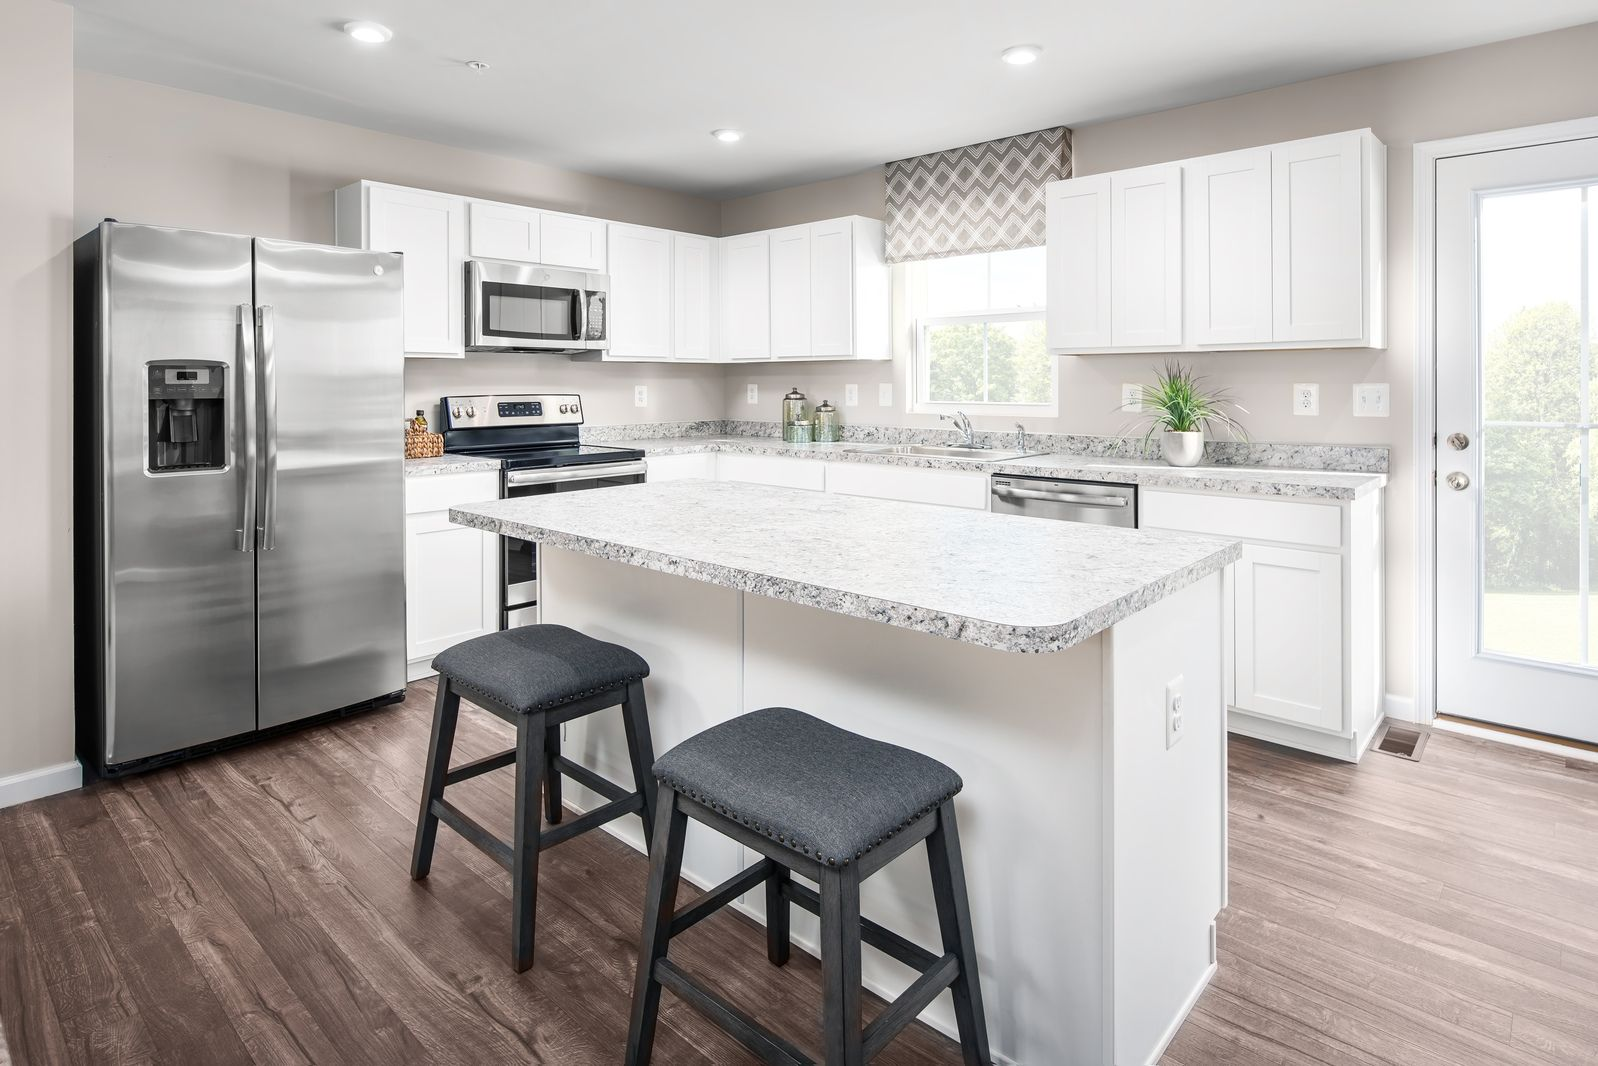 Welcome Home to Enclave at Heartland Crossing:Move into your new home in the Spring! Schedule your visit to learn more about our spring delivery homesat Enclave at Heartland Crossing!